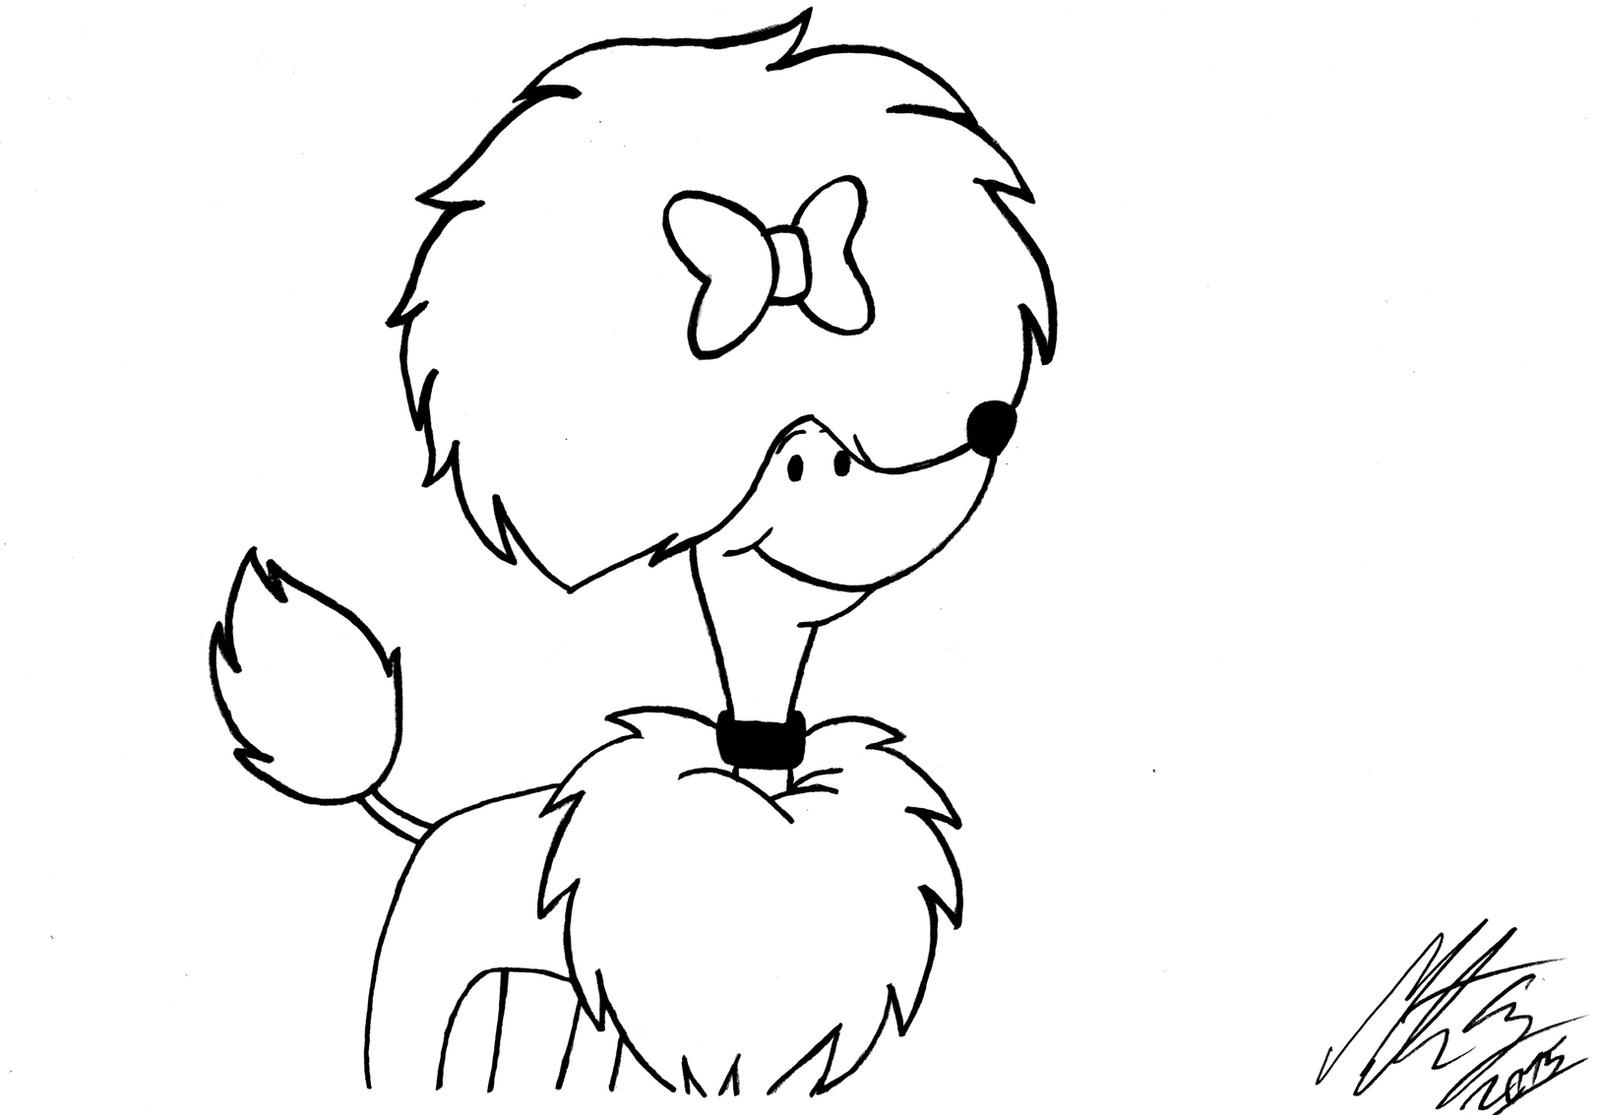 Clifford the Big Red Dog (inked version) by MortenEng21 on DeviantArt